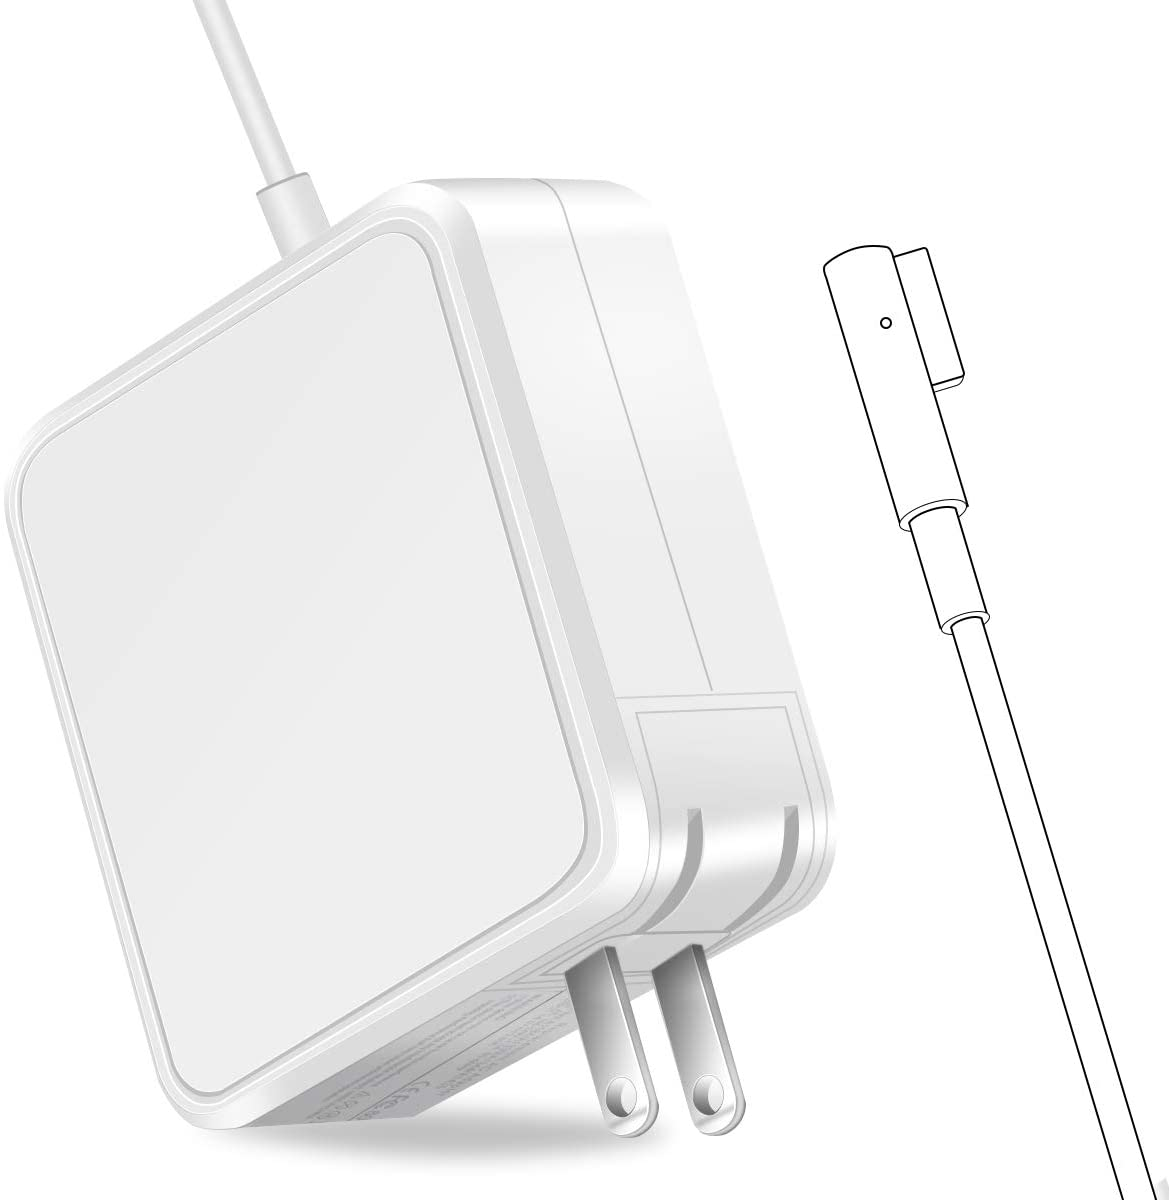 Mac Book pro Charger, AC 85w Magnetic L-Tip Power Adapter Replacement for MacBook Pro-13/15/17 Inch (Before 2012) (85W L-Tip)